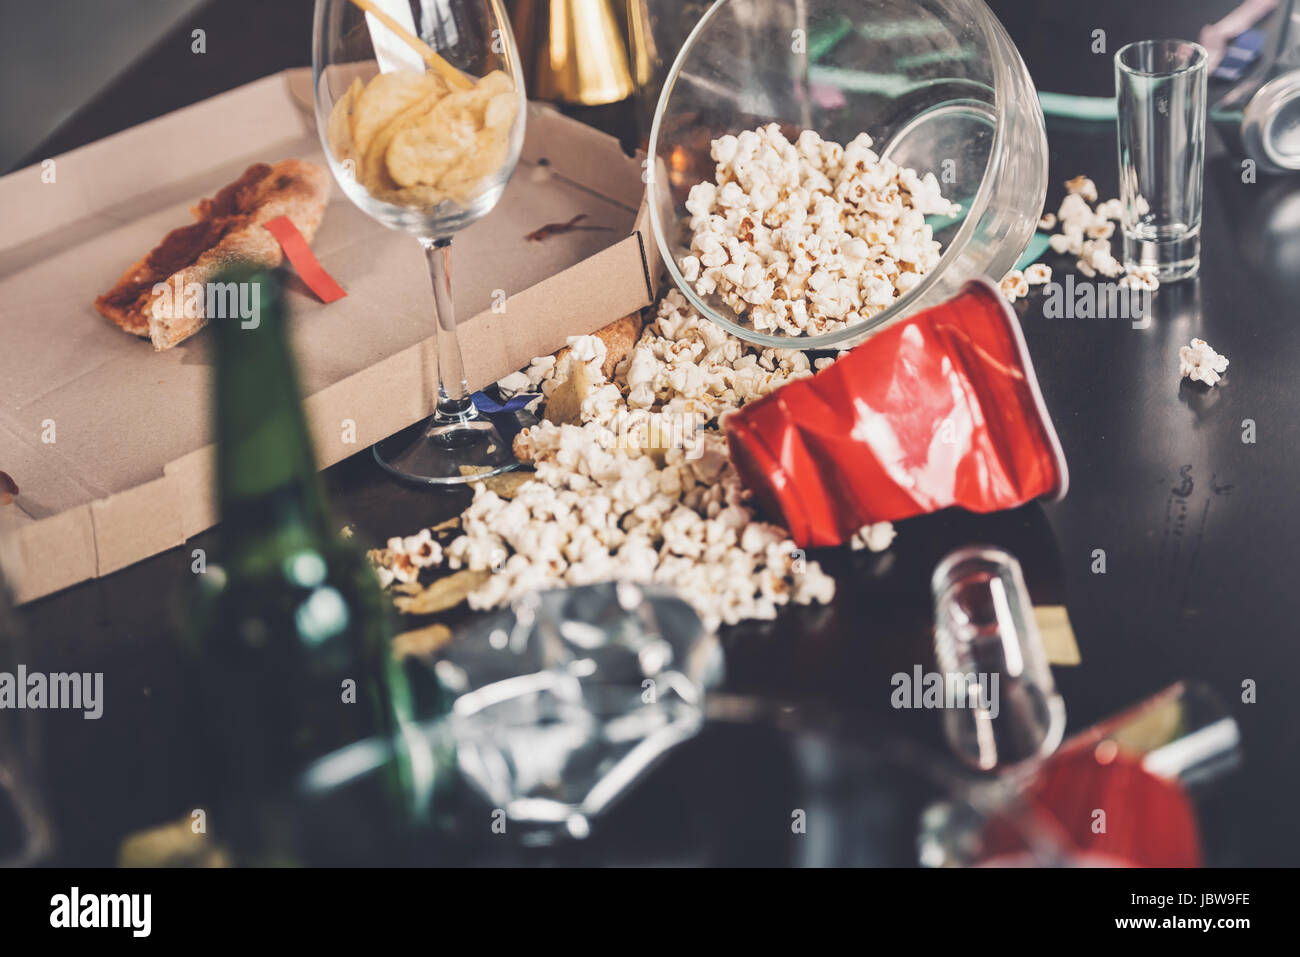 Close-up view of popcorn, glasses and trash on messy table after party - Stock Image